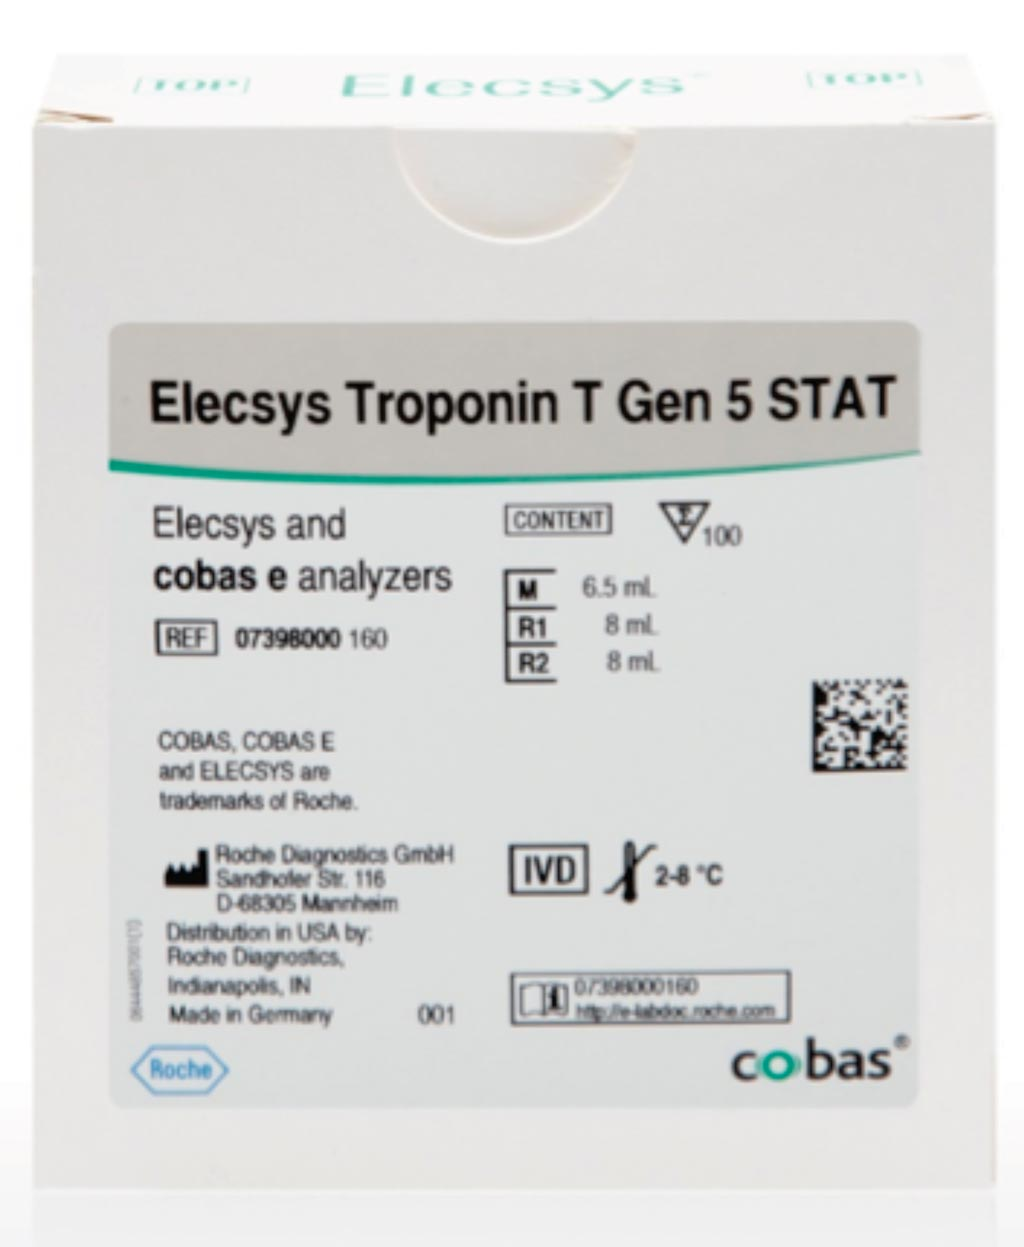 Image: The Elecsys Troponin T Gen 5 STAT assay (Photo courtesy of Roche Diagnostics).